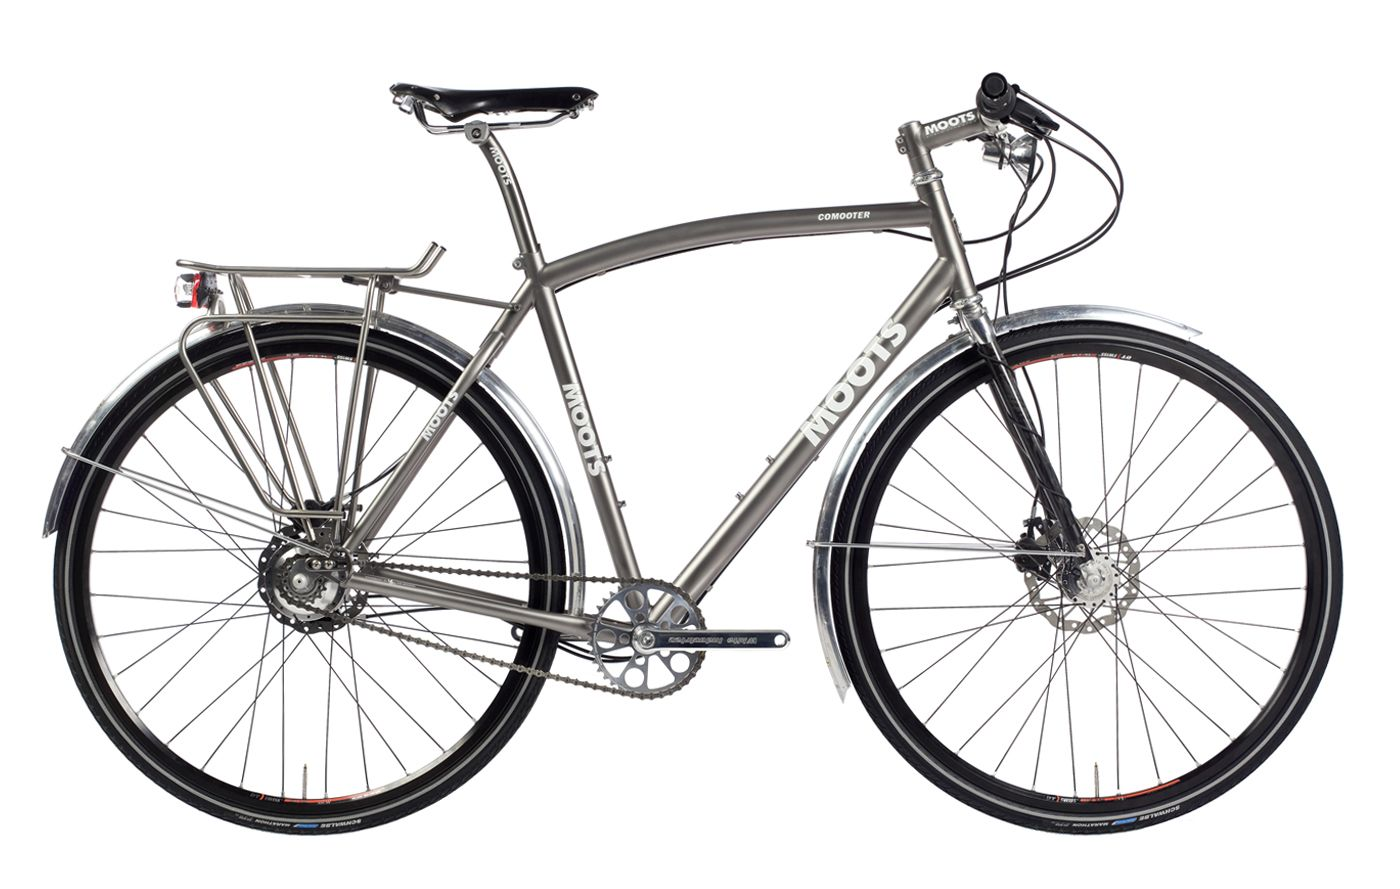 COMOOTER   Moots [USA]   BELT DRIVE BICYCLES   Bicycle